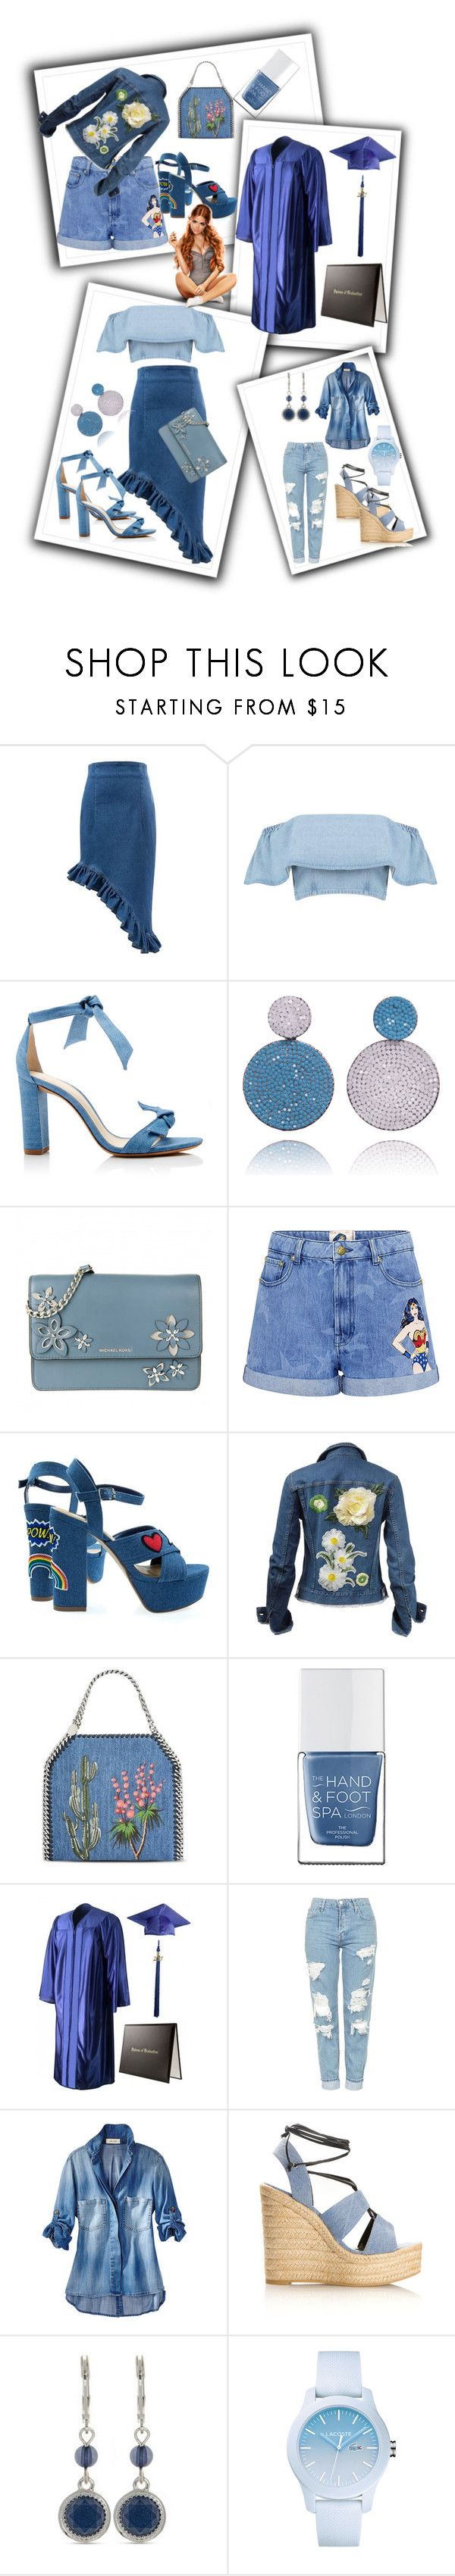 """Untitled #328"" by ljiljanabanovic ❤ liked on Polyvore featuring Alexandre Birman, MICHAEL Michael Kors, Paul & Joe Sister, STELLA McCARTNEY, The Hand & Foot Spa, Topshop, Yves Saint Laurent, Nine West and Lacoste"